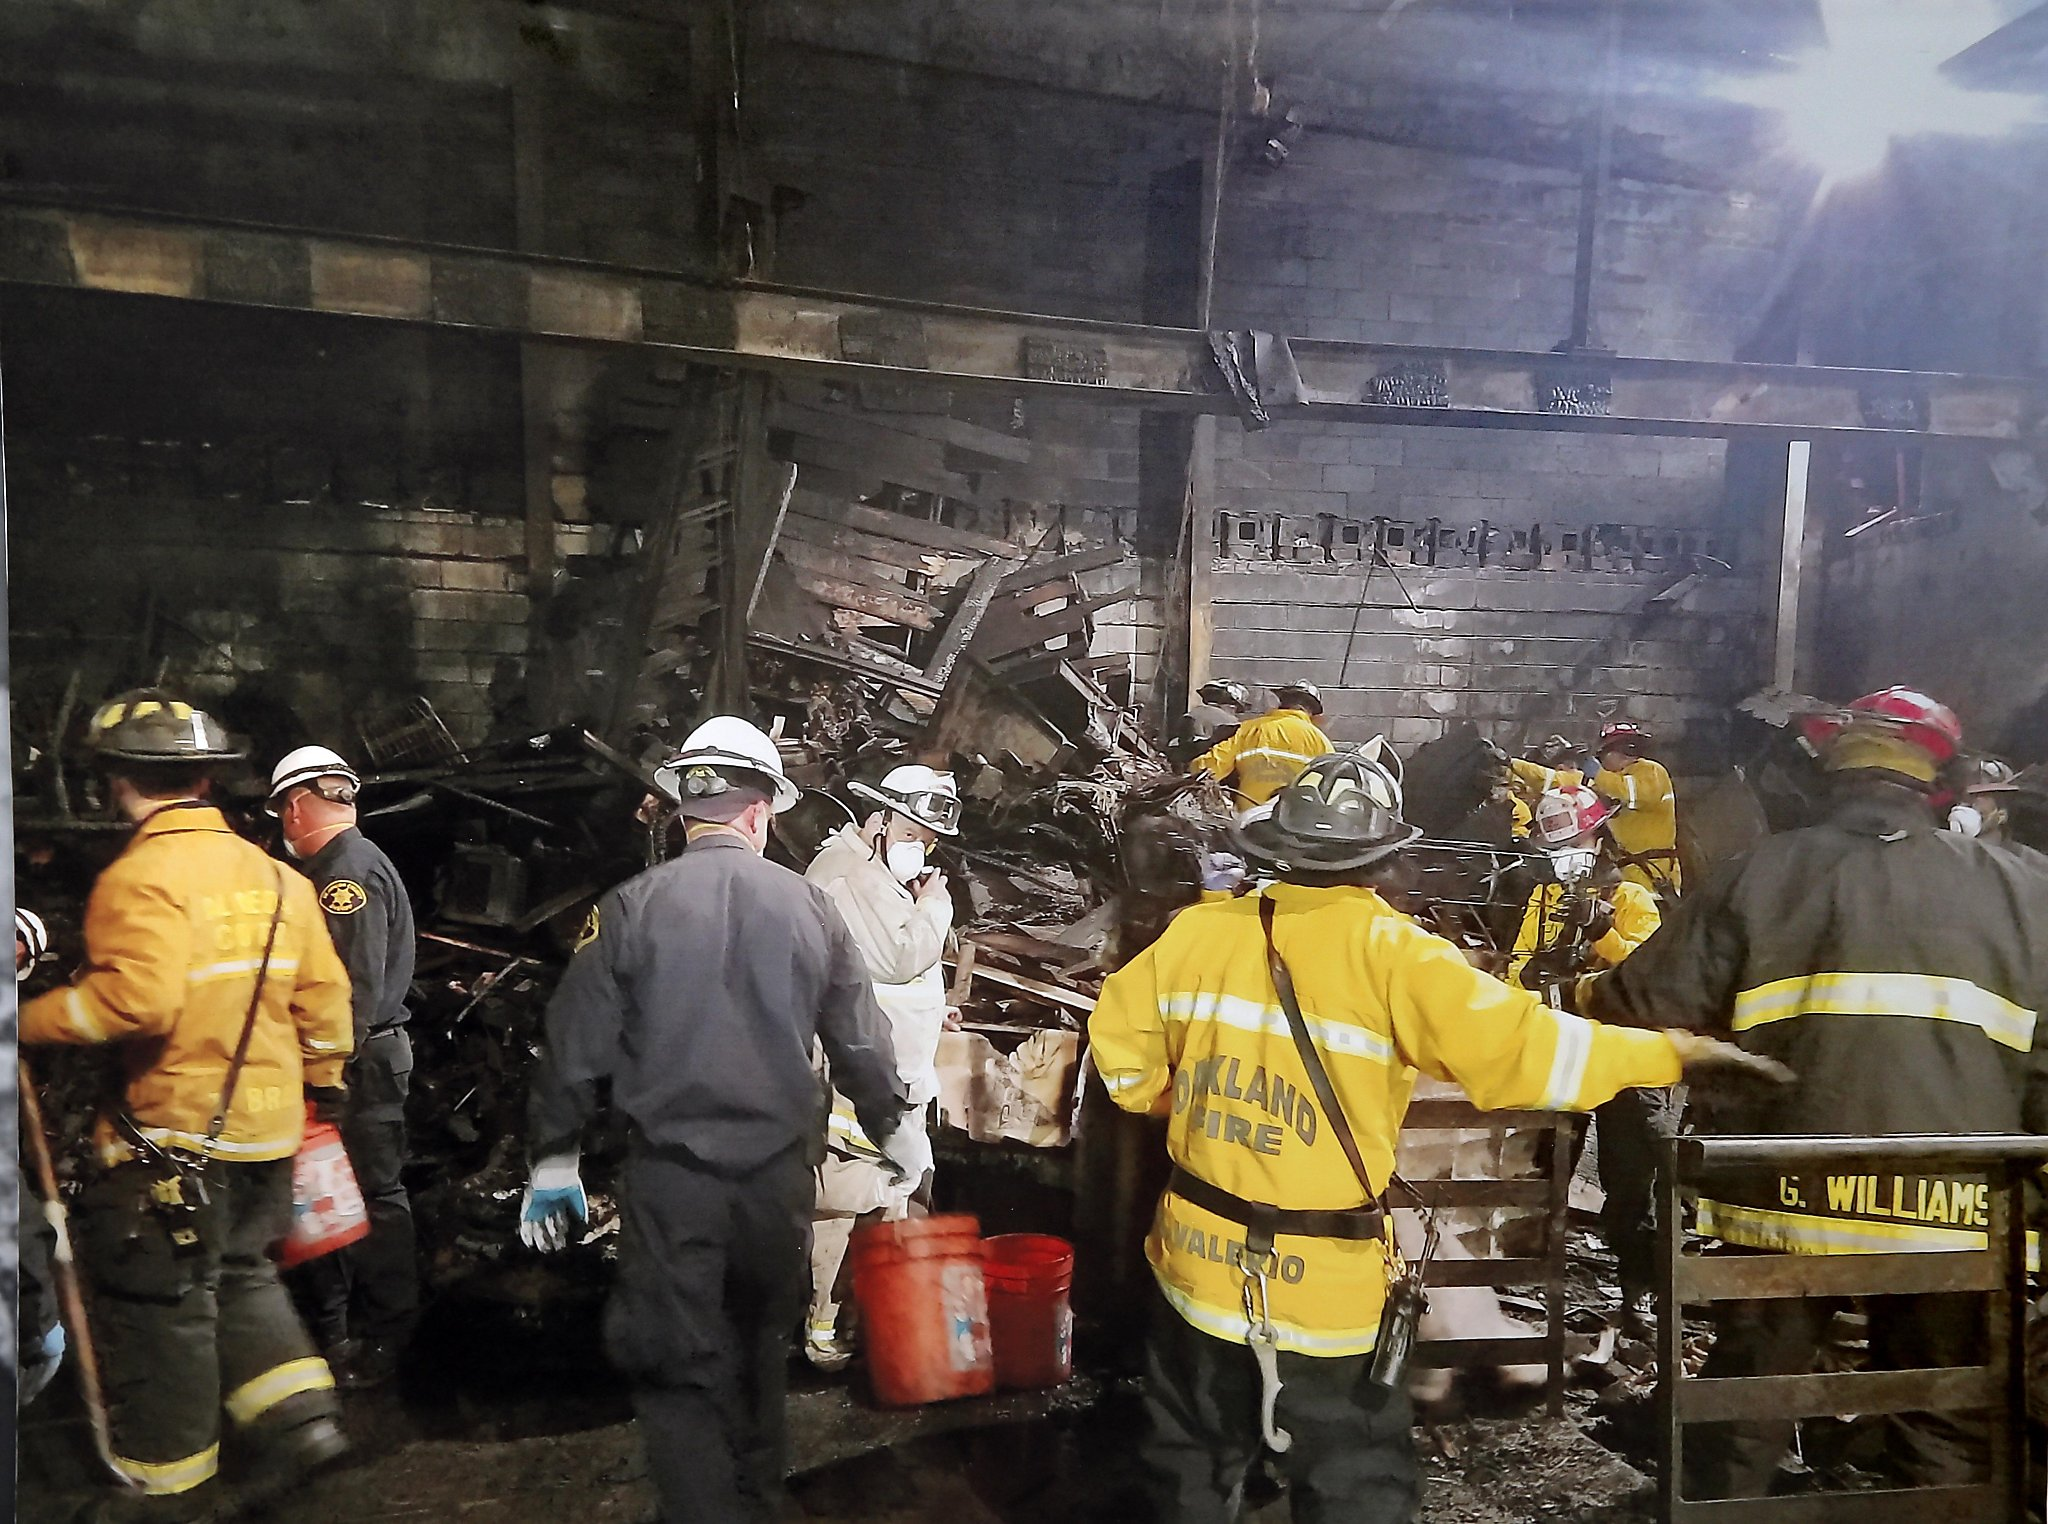 A photo released by the Oakland Fire Department, shows an interior view of the fire